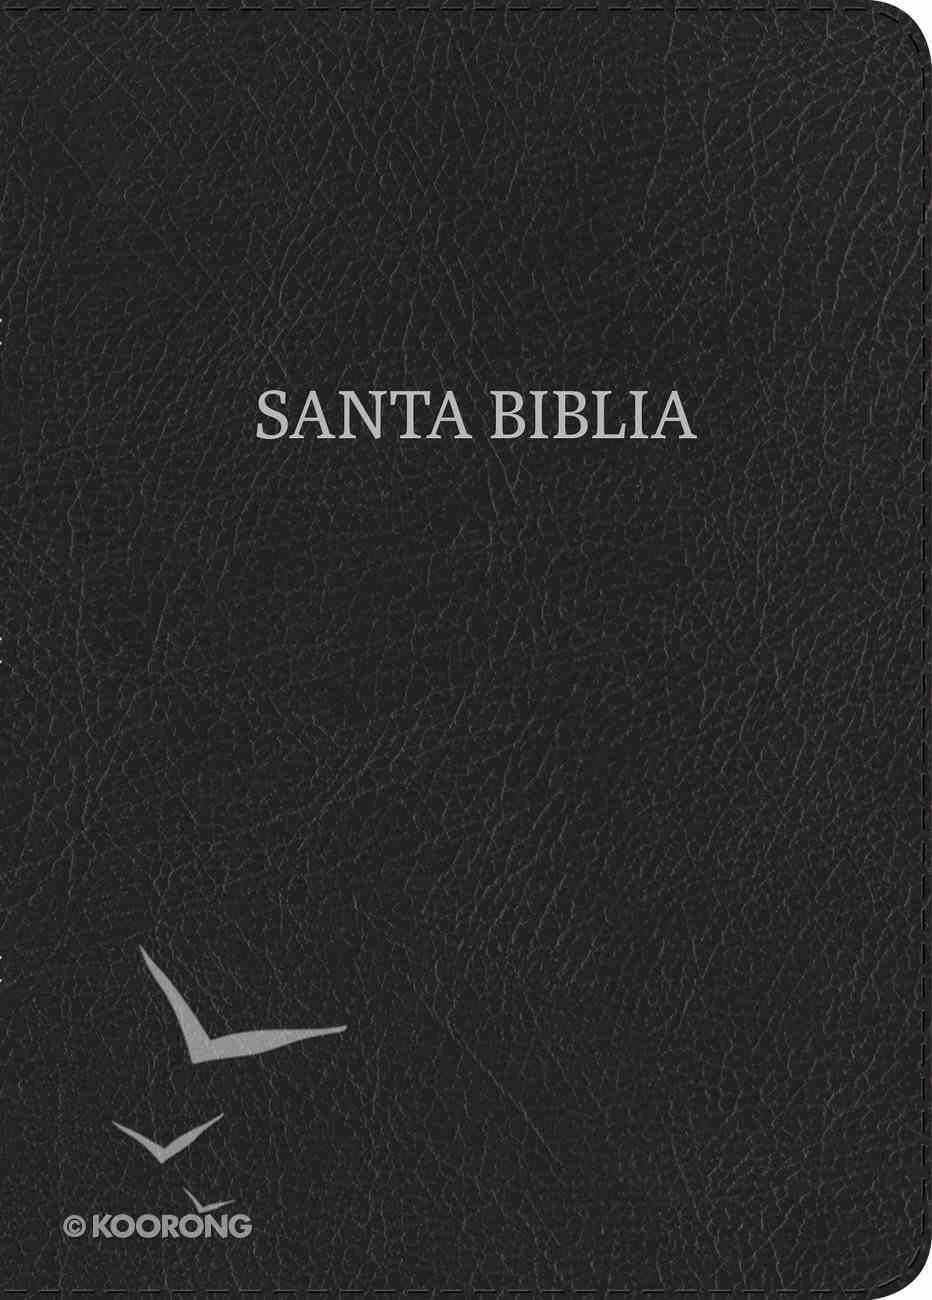 Rvr 1960 Biblia Compacta Letra Grande Negro (Red Letter Edition) (Large Print Compact) Bonded Leather